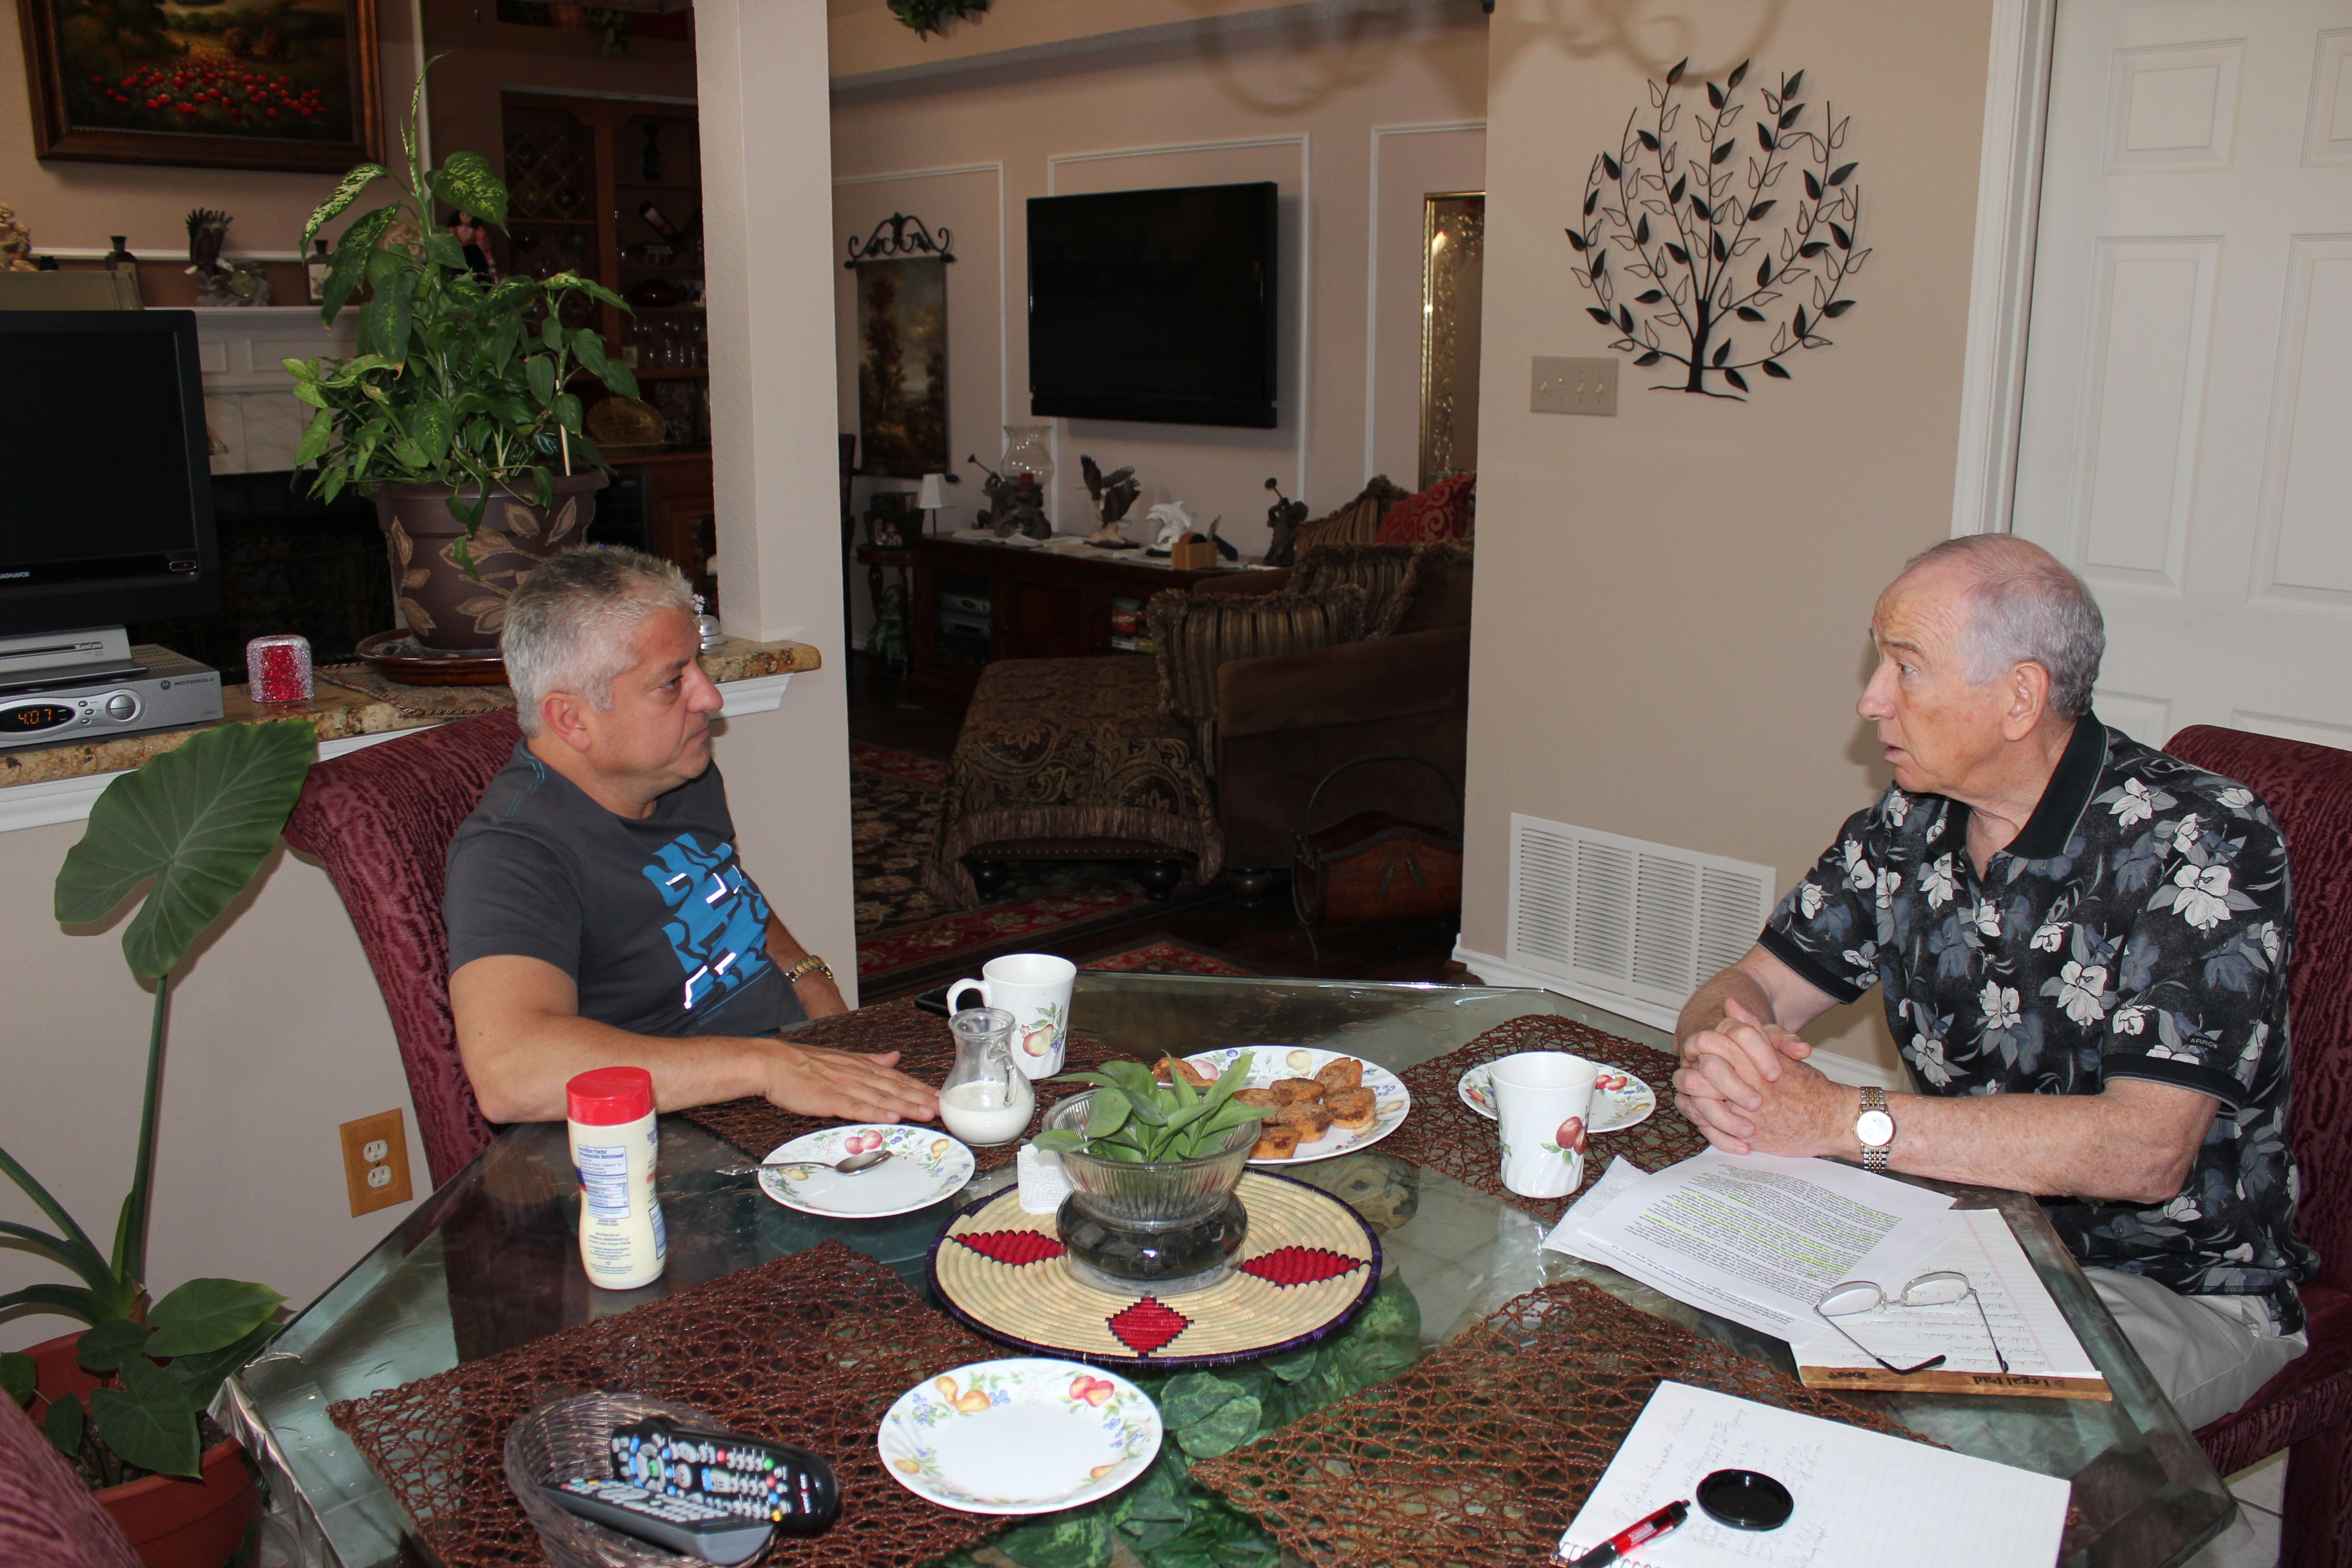 My wife Annette and I had the pleasure of having Mehrdad Moayedi for coffee and cake at our home in July 2013. During the 2-hour casual chat we became more convinced than ever that the Town Council made a wise choice when they selected Mr. Moayedi to handle the River Walk project.